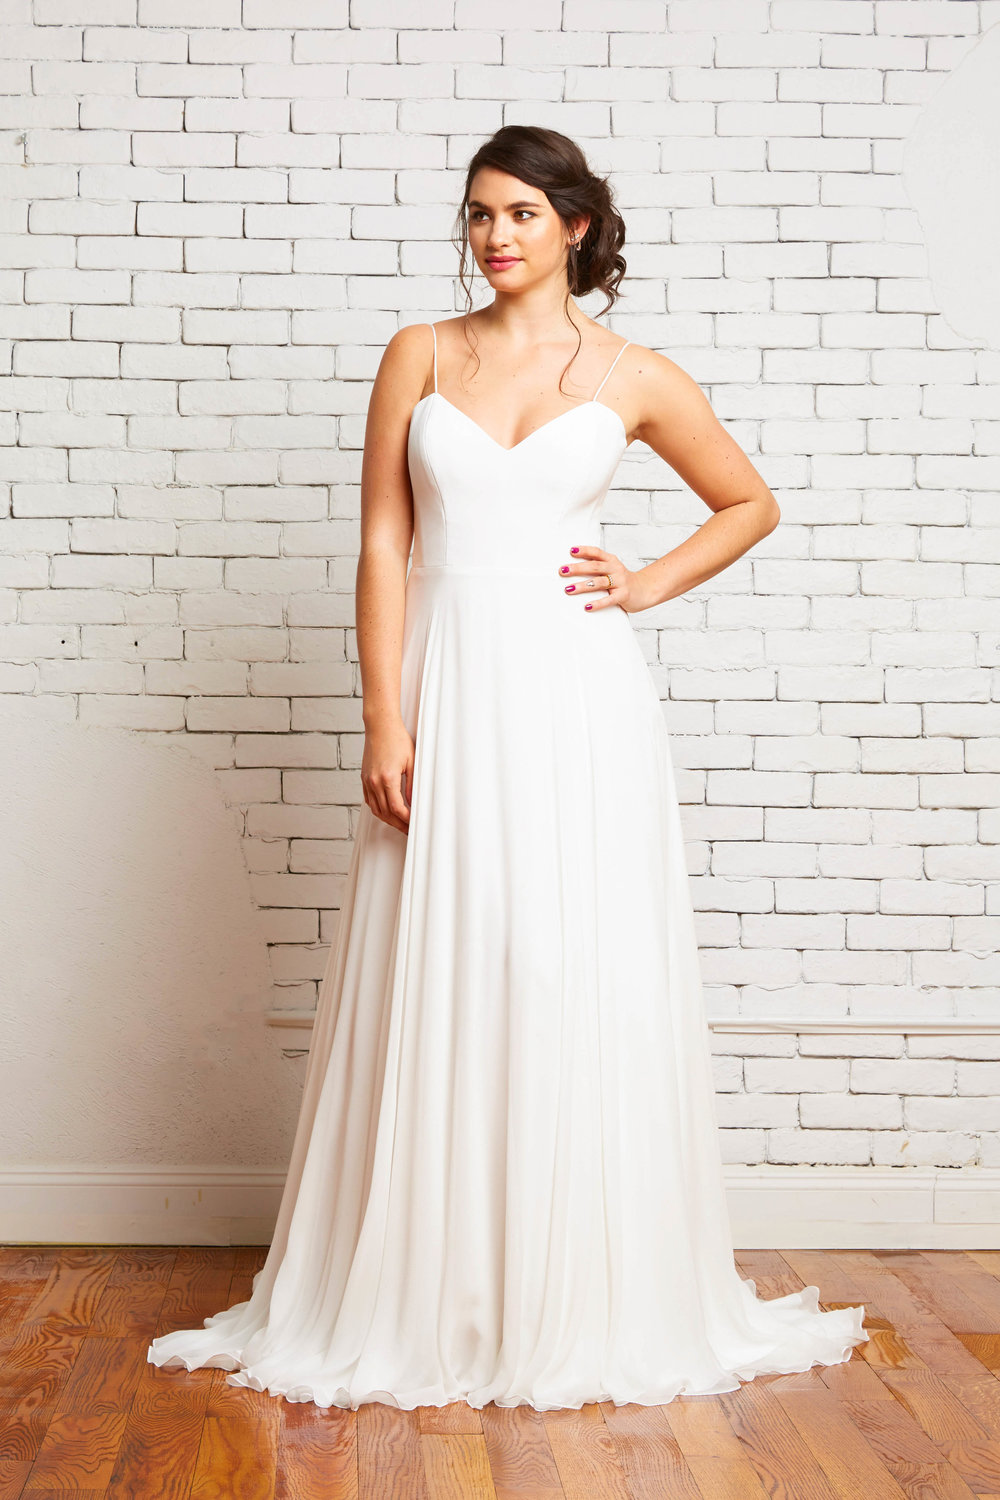 3A. Daisy Front-Rebecca Schoneveld-2-103_simple_silk_chiffon_a_line_gown.jpg